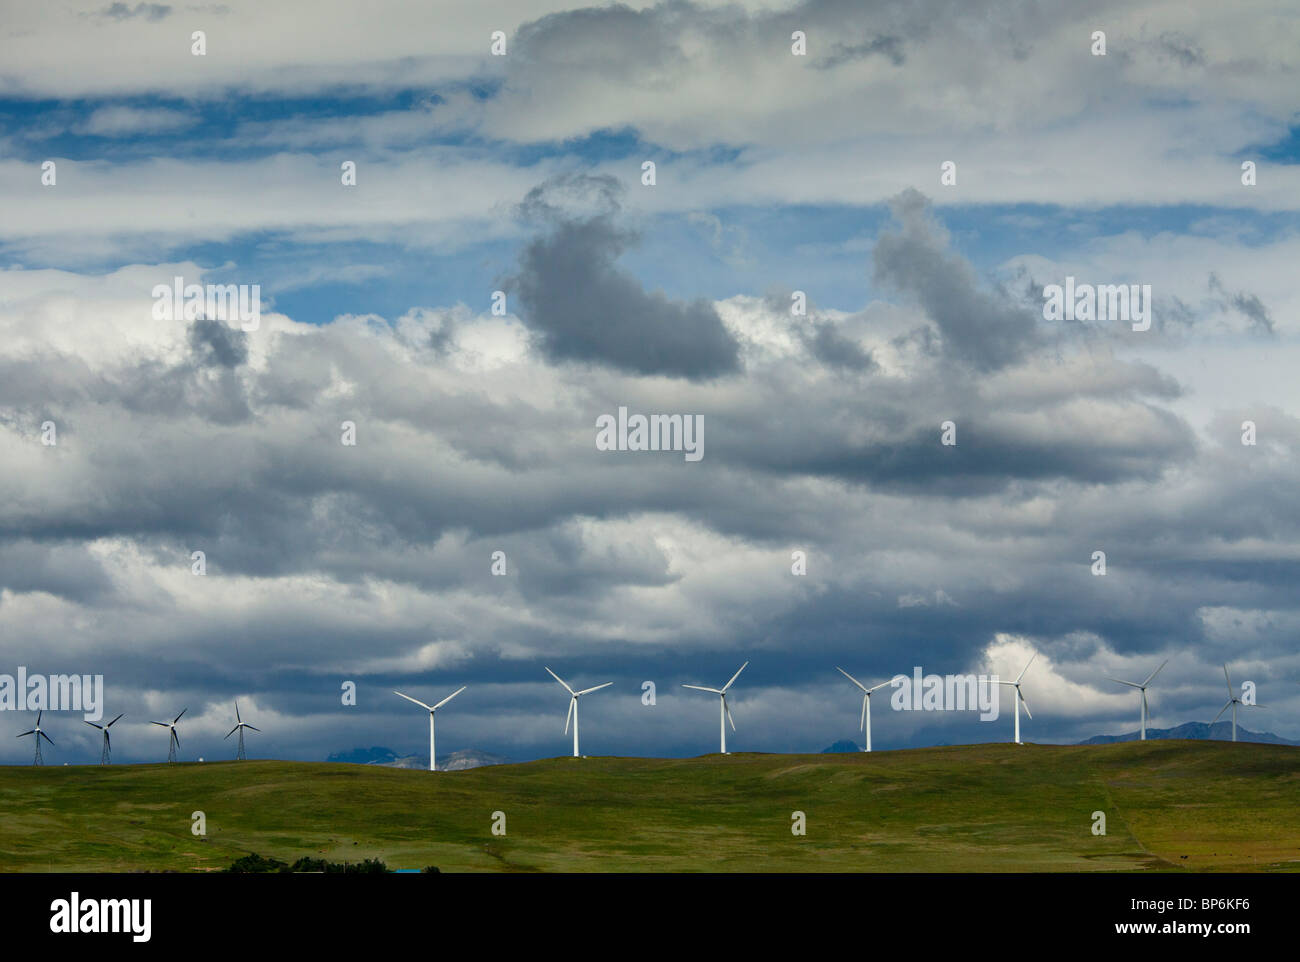 Windmills at Pincher Creek, Alberta, with the Rockies beyond, in stormy weather; Canada - Stock Image